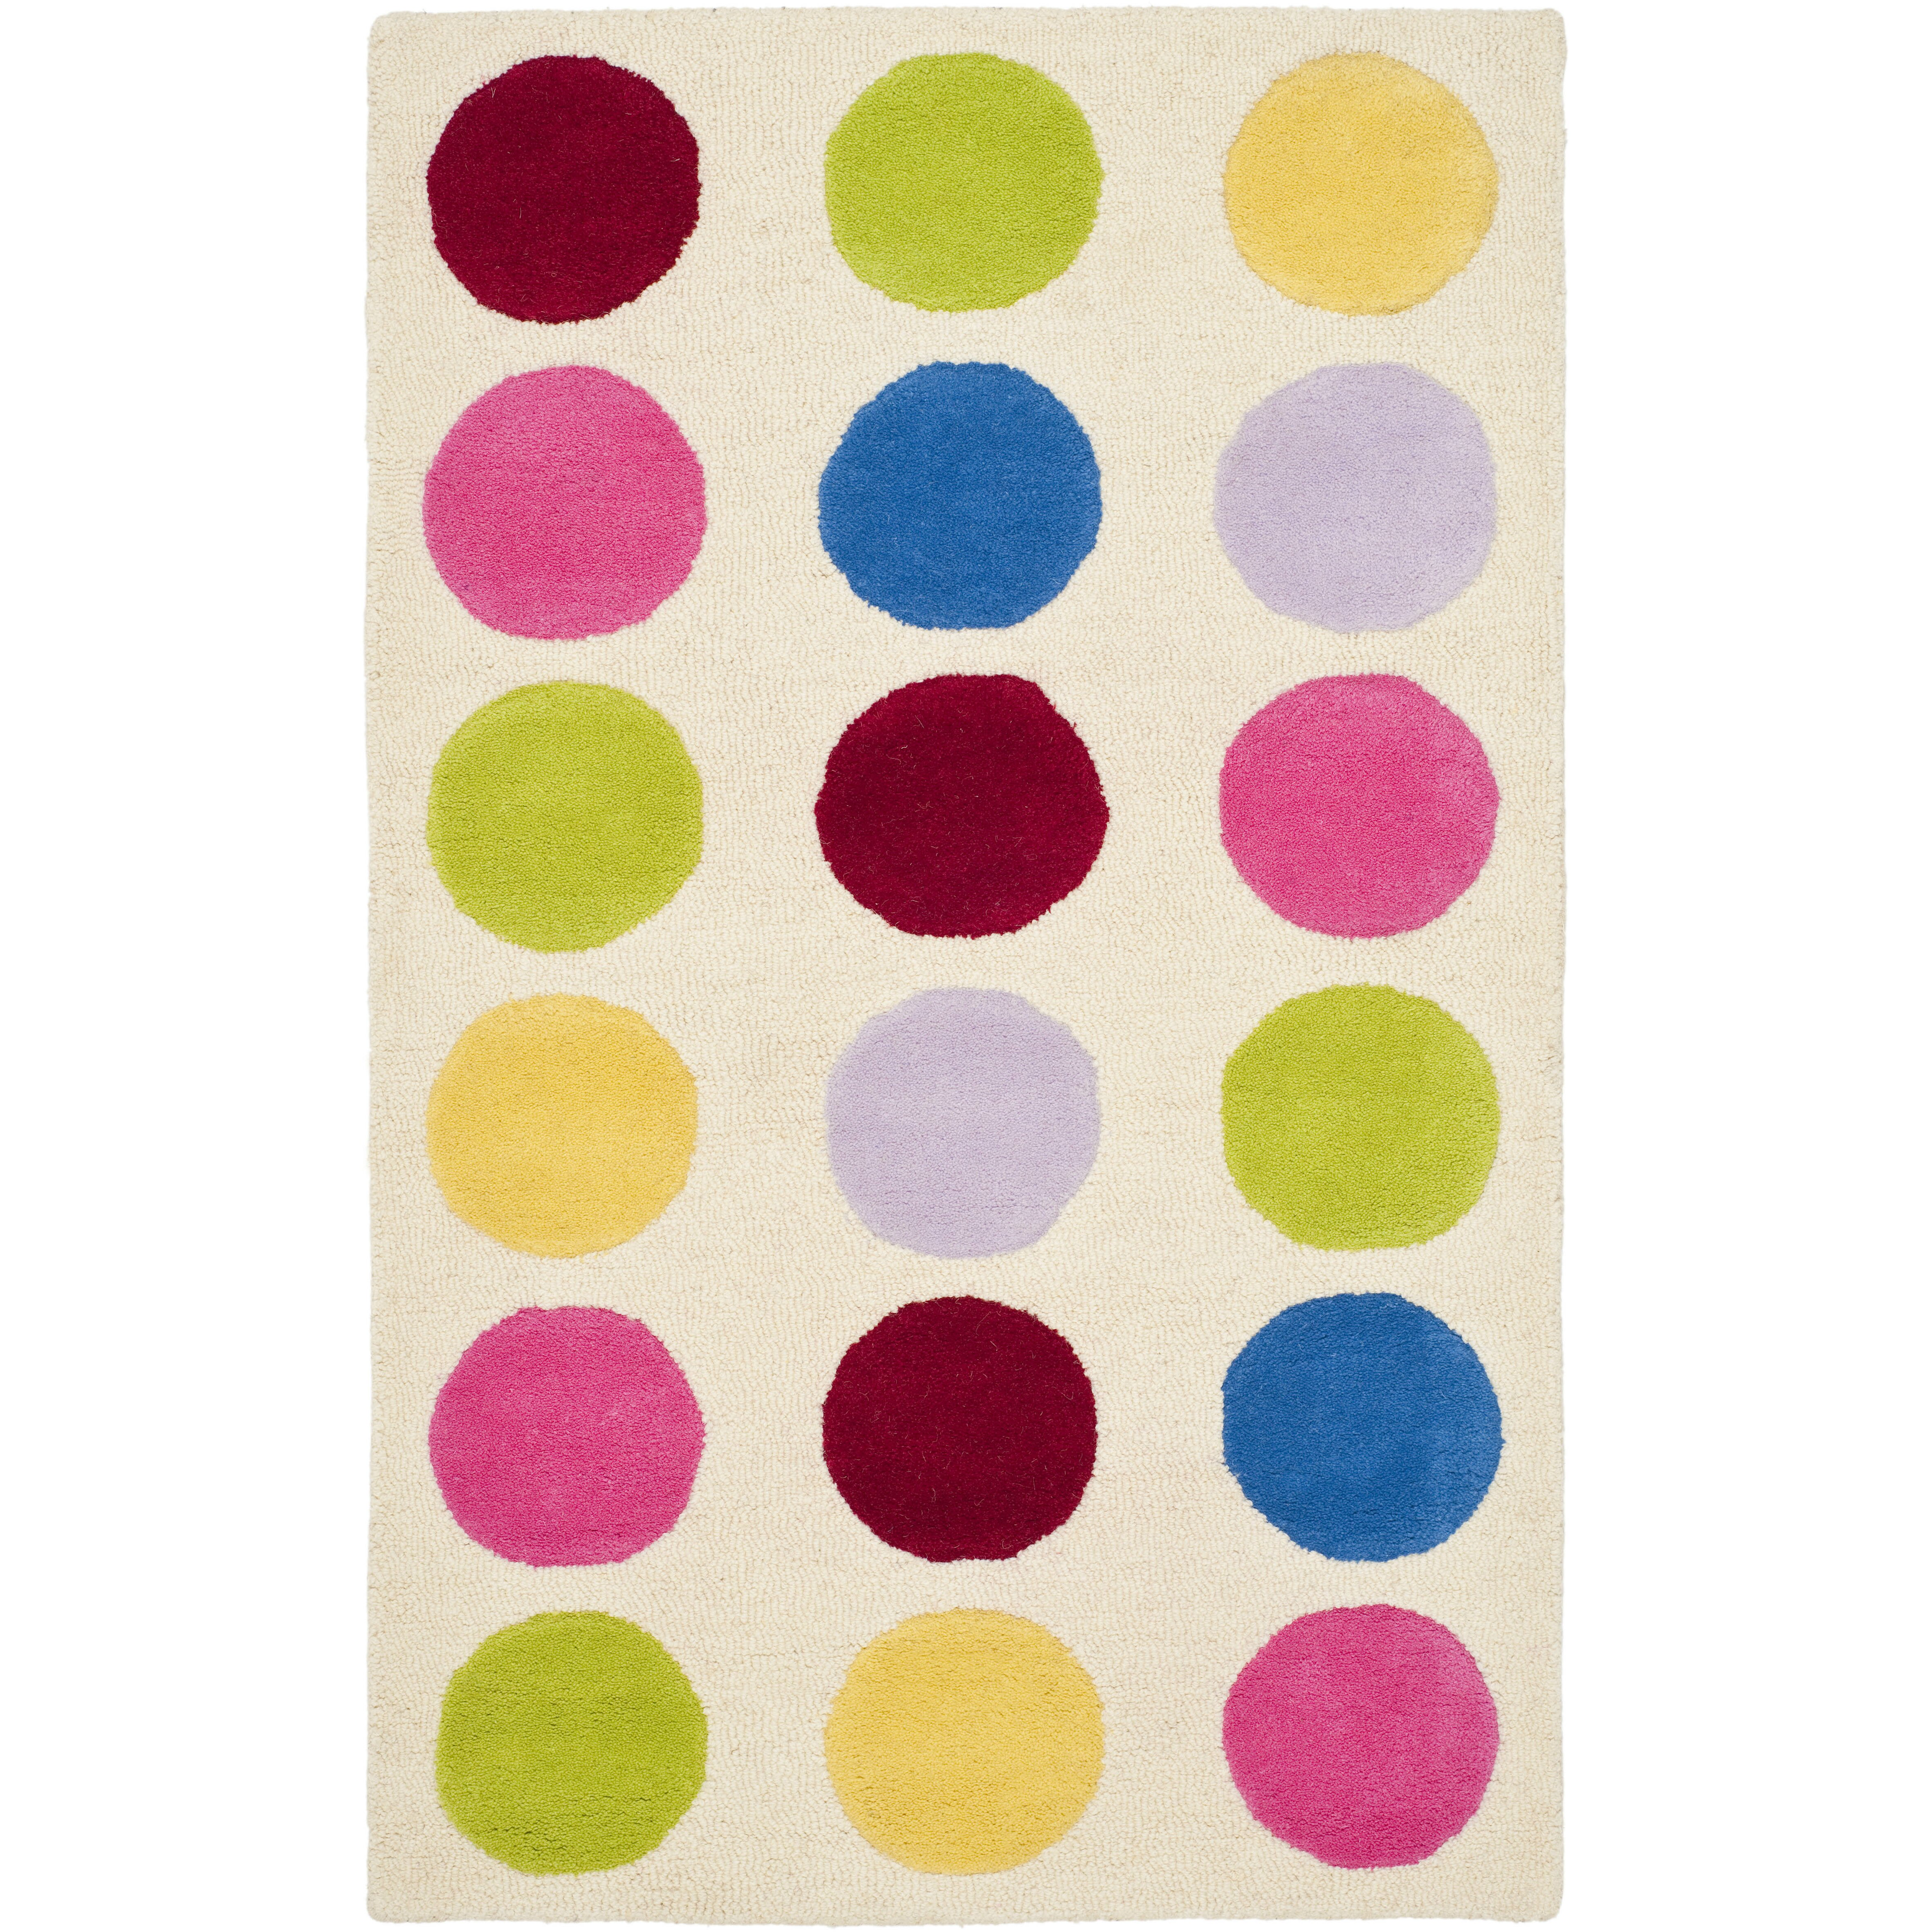 safavieh polka dot area rug cheerful home office rug wayfair safavieh